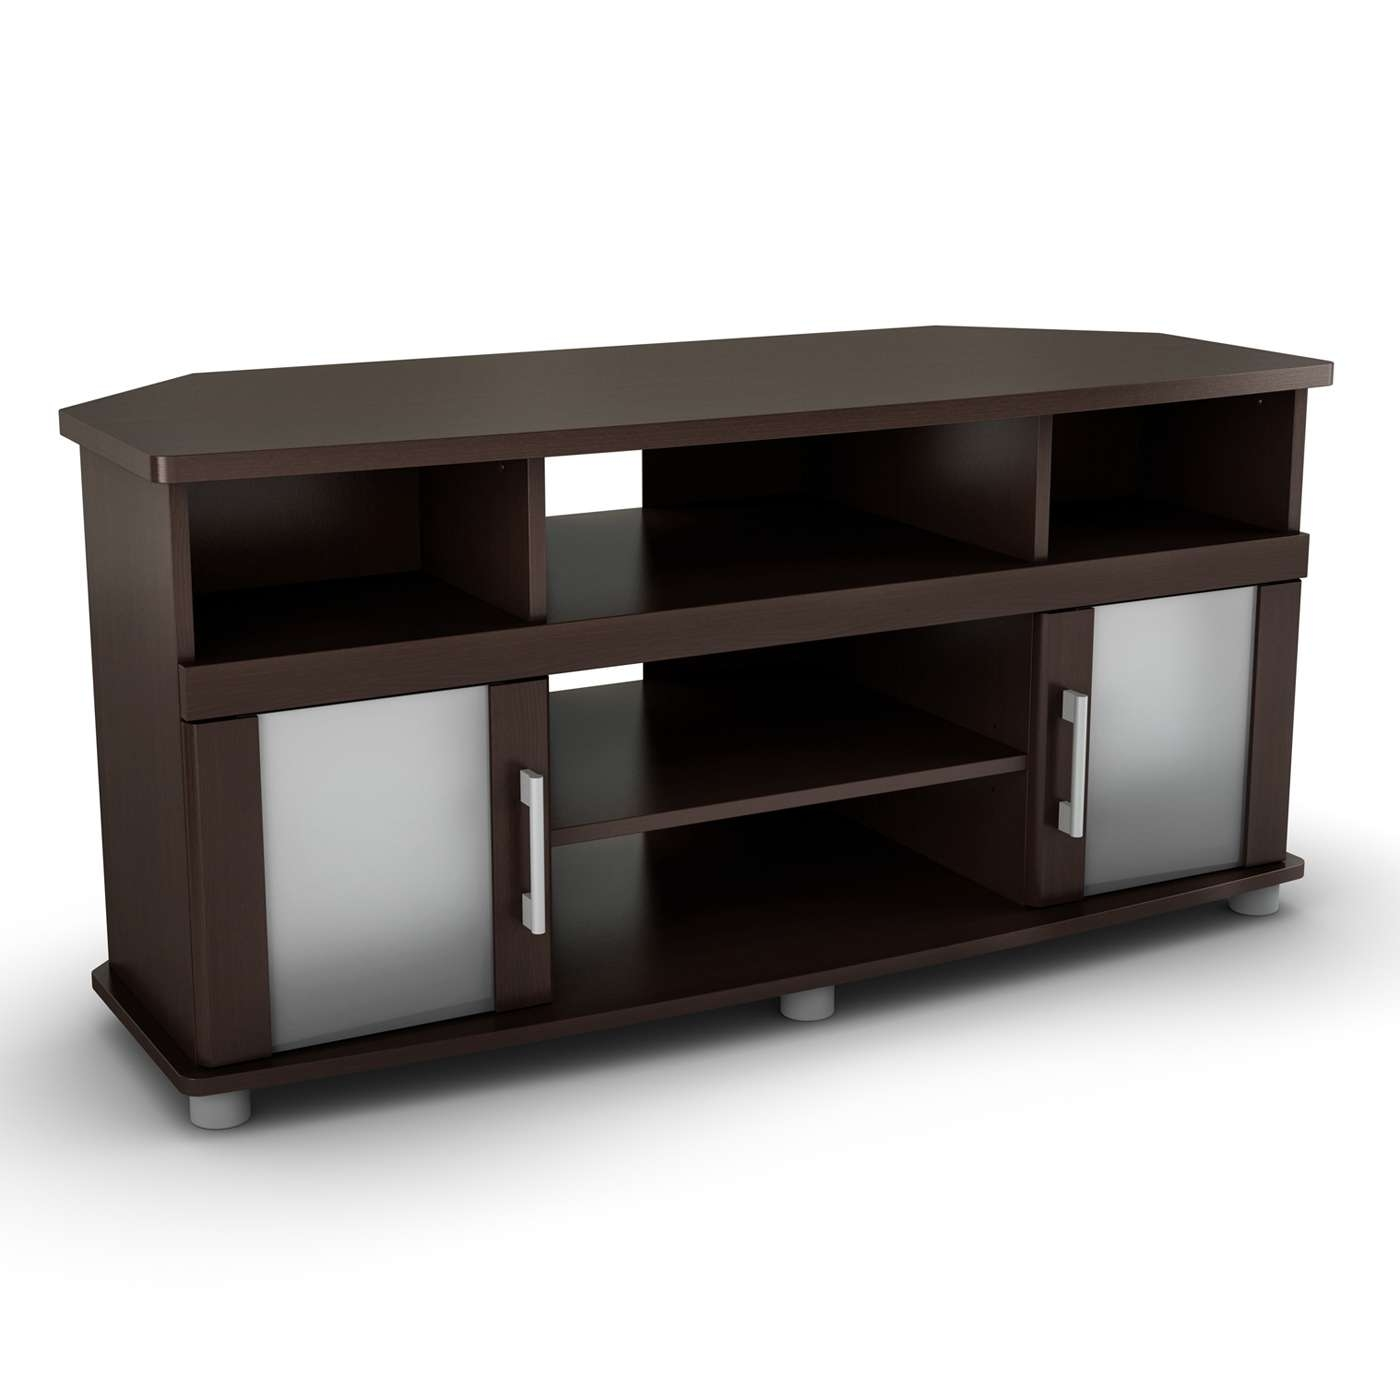 Corner Tv Stands | Lowe's Canada Pertaining To 24 Inch Corner Tv Stands (View 4 of 15)